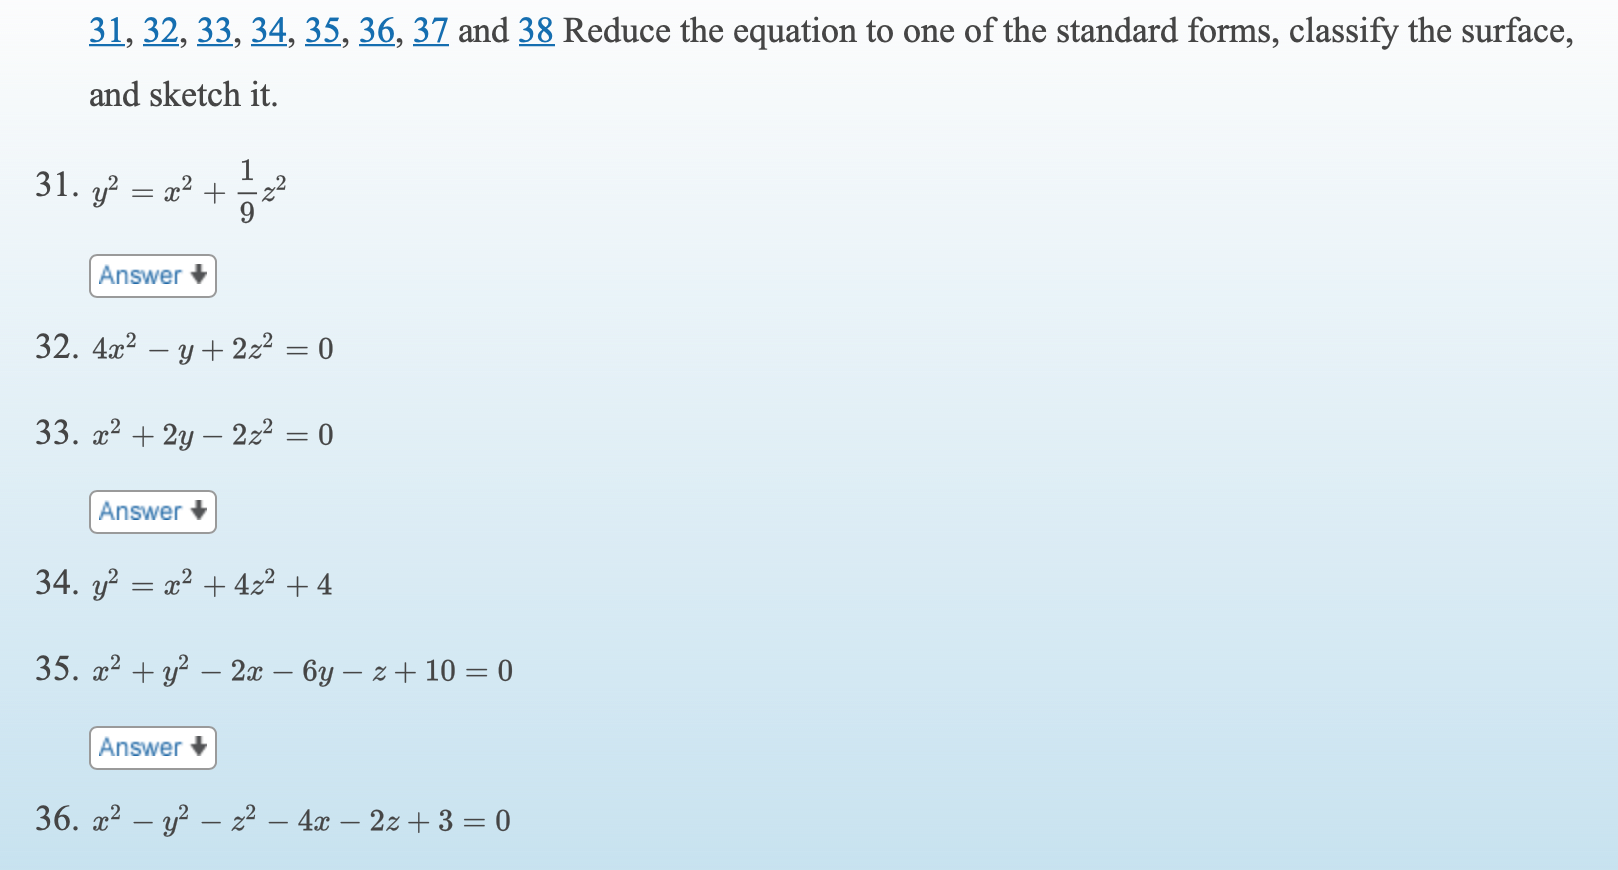 31, 32, 33, 34, 35, 36, 37 and 38 Reduce the equation to one of the standard forms, classify the surface, and sketch it. 31. y x2 + Answer + 32. 4x? – y + 2z2 = 0 33. x2 + 2y – 2z2 = 0 Answer 34. y? = x2 + 422 + 4 35. a? + y? – 2x – 6y – z + 10 = 0 Answer + 36. x2 – y² – z² – 4x – 2z + 3 = 0